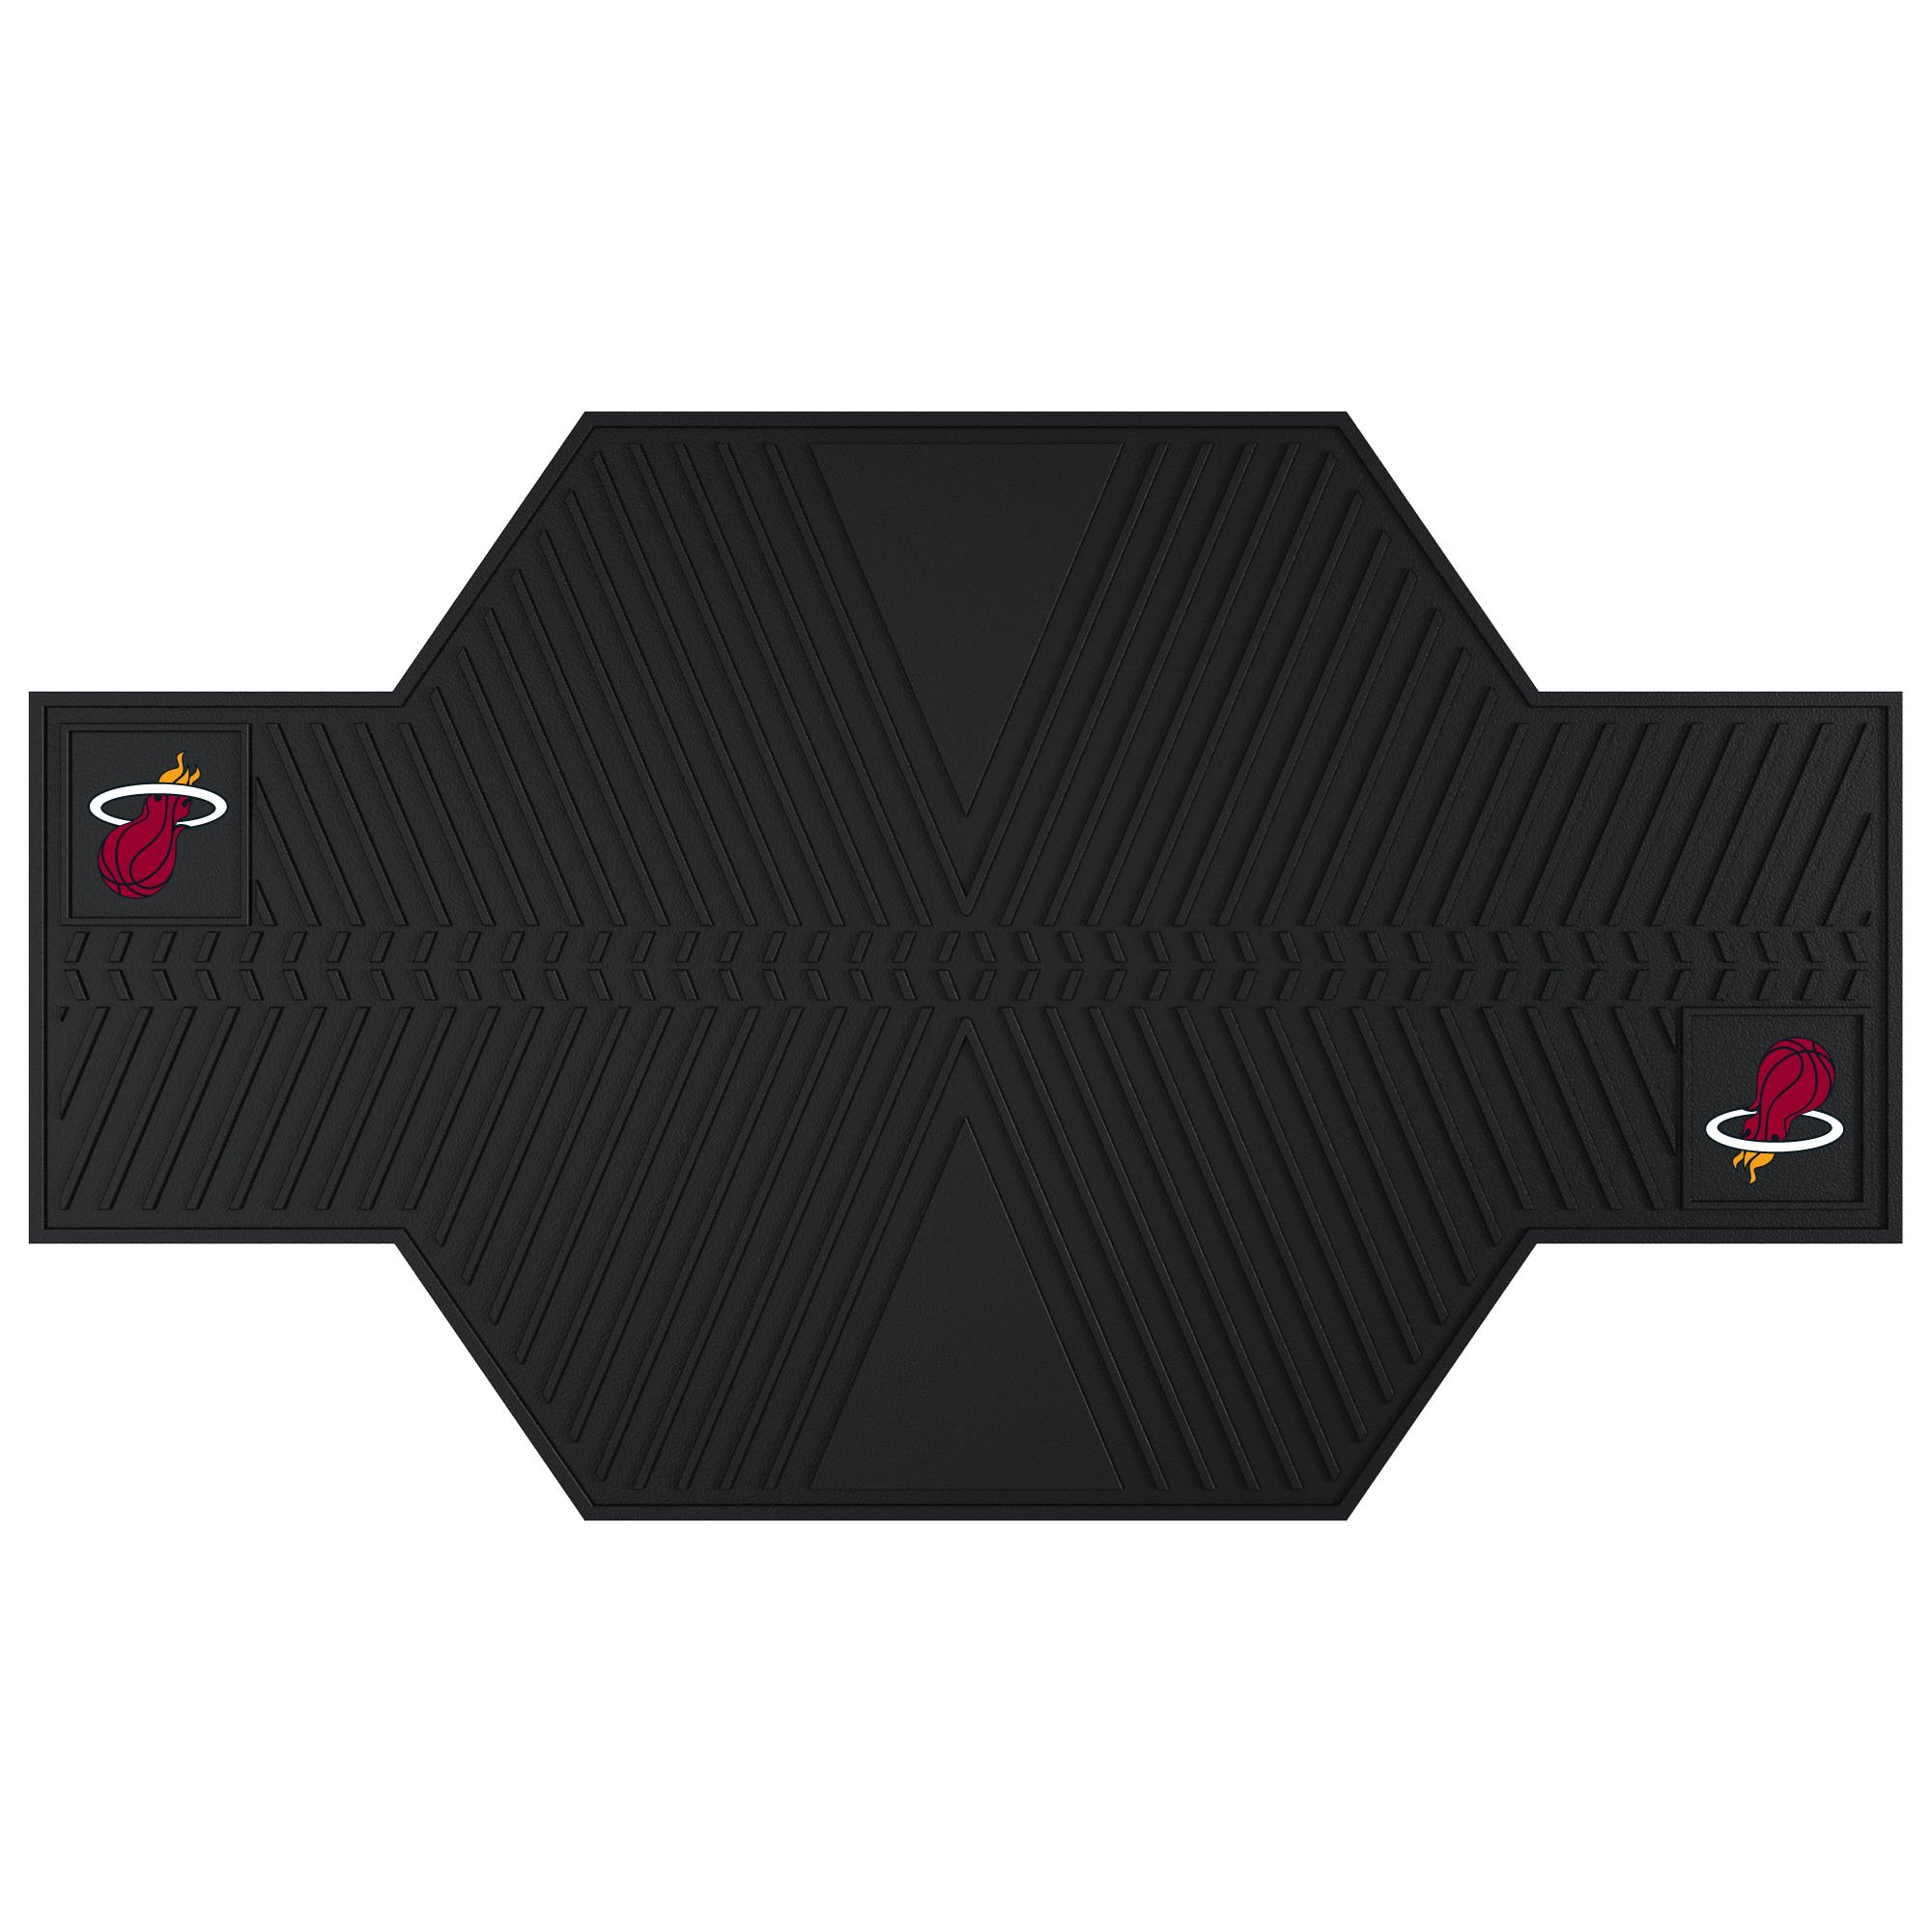 FANMATS 15383 NBA Miami Heat Motorcycle Mat